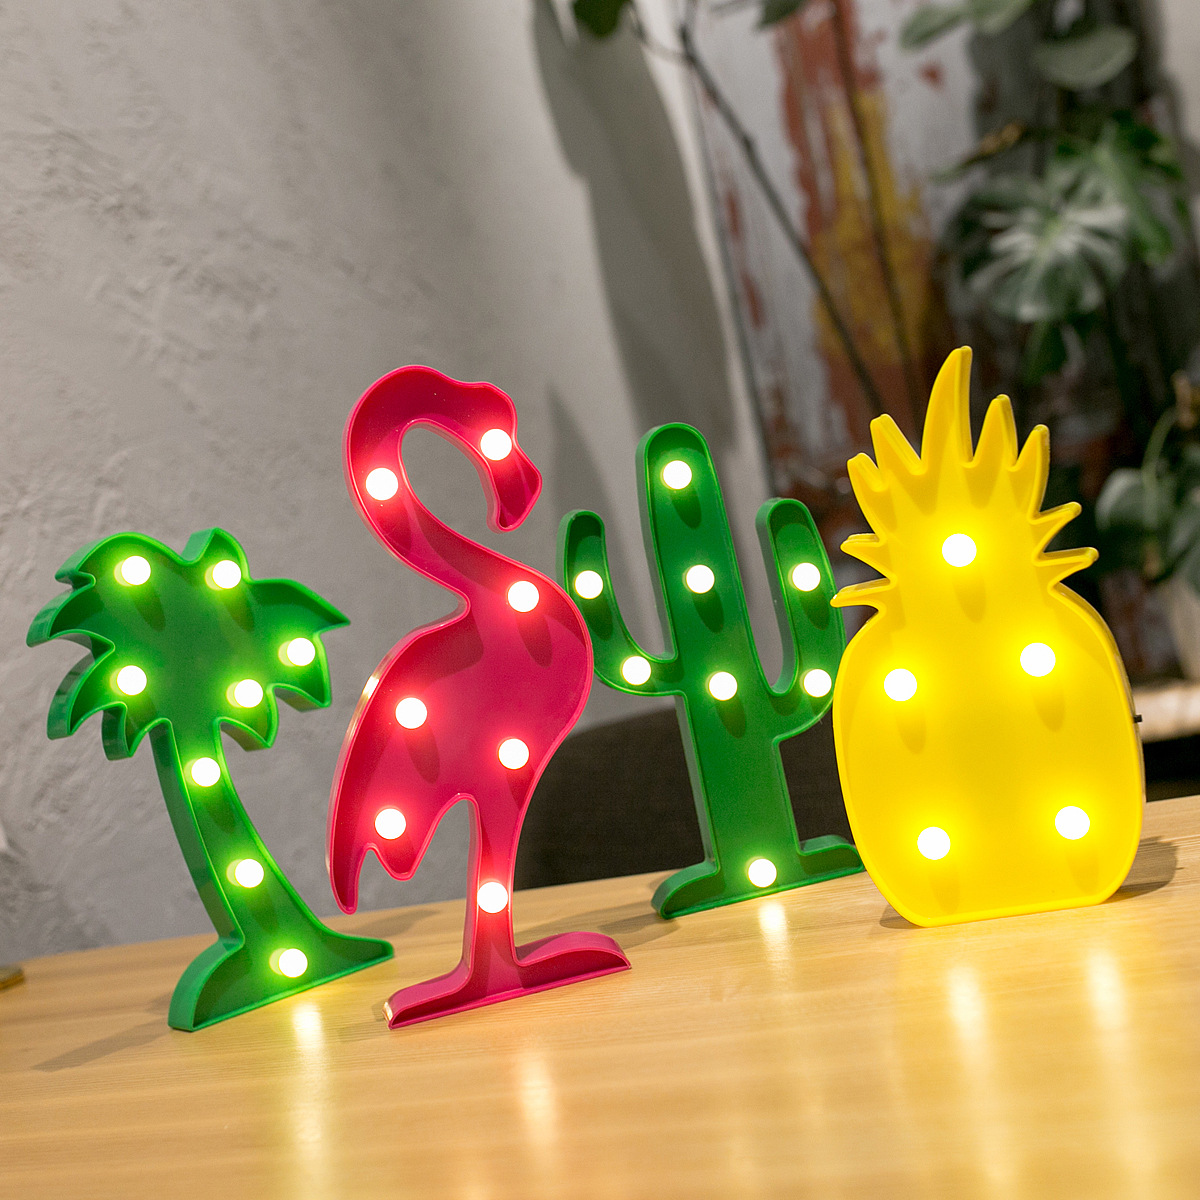 Cartoon Table Lamp  3D Pineapple / Flamingo / Cactus/Small TreeModeling Night Light LED Table Lamp  Home Decoration Office Gifts